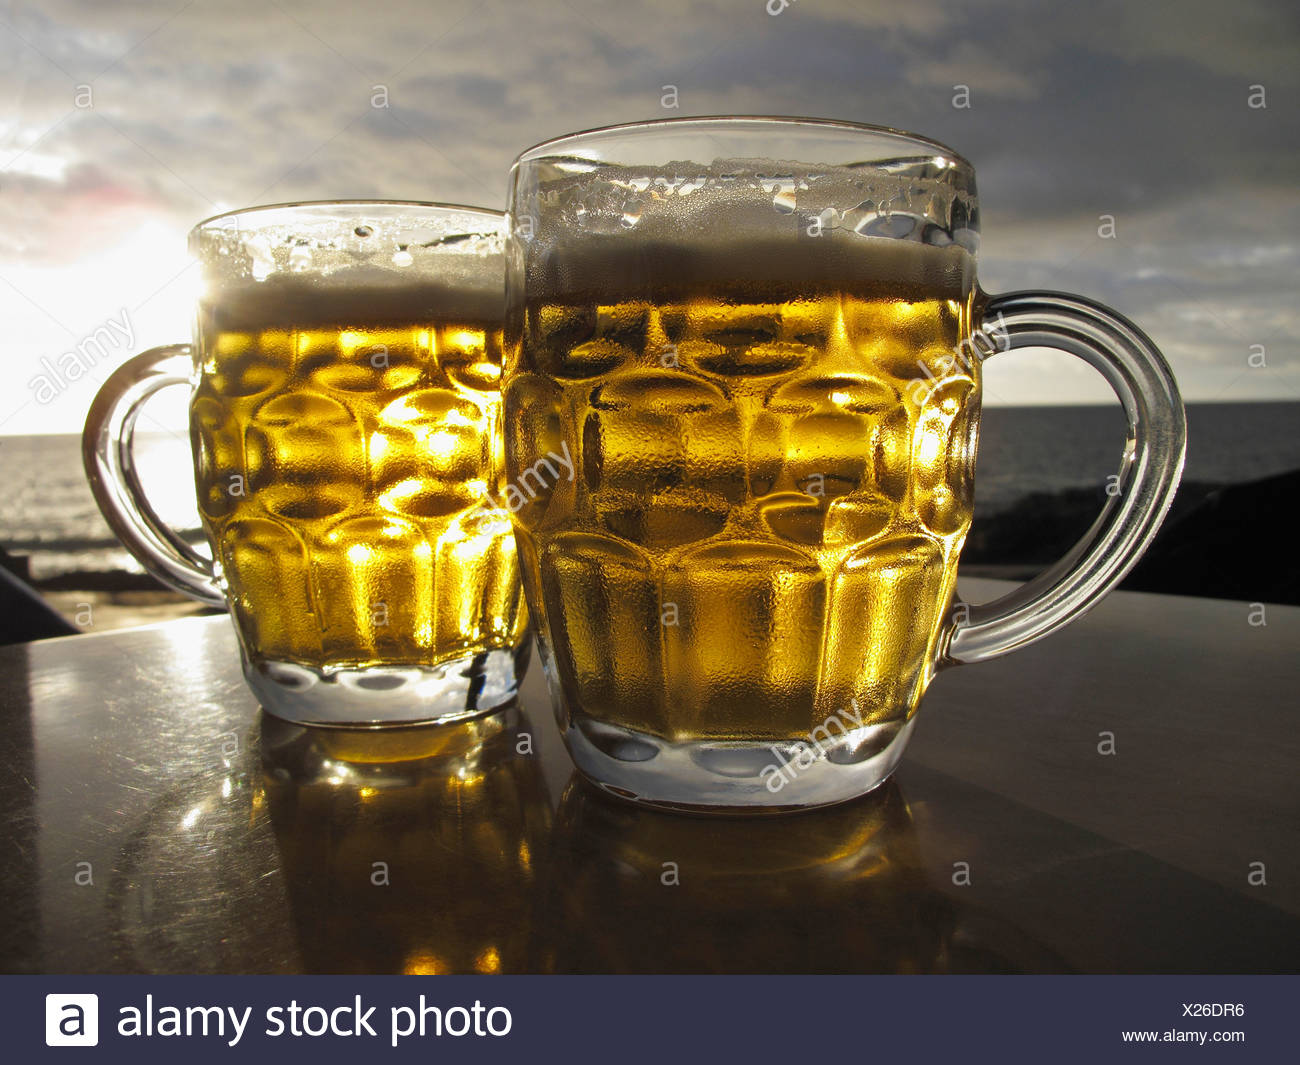 Spain, Two beer glasses on table with sea in background - Stock Image